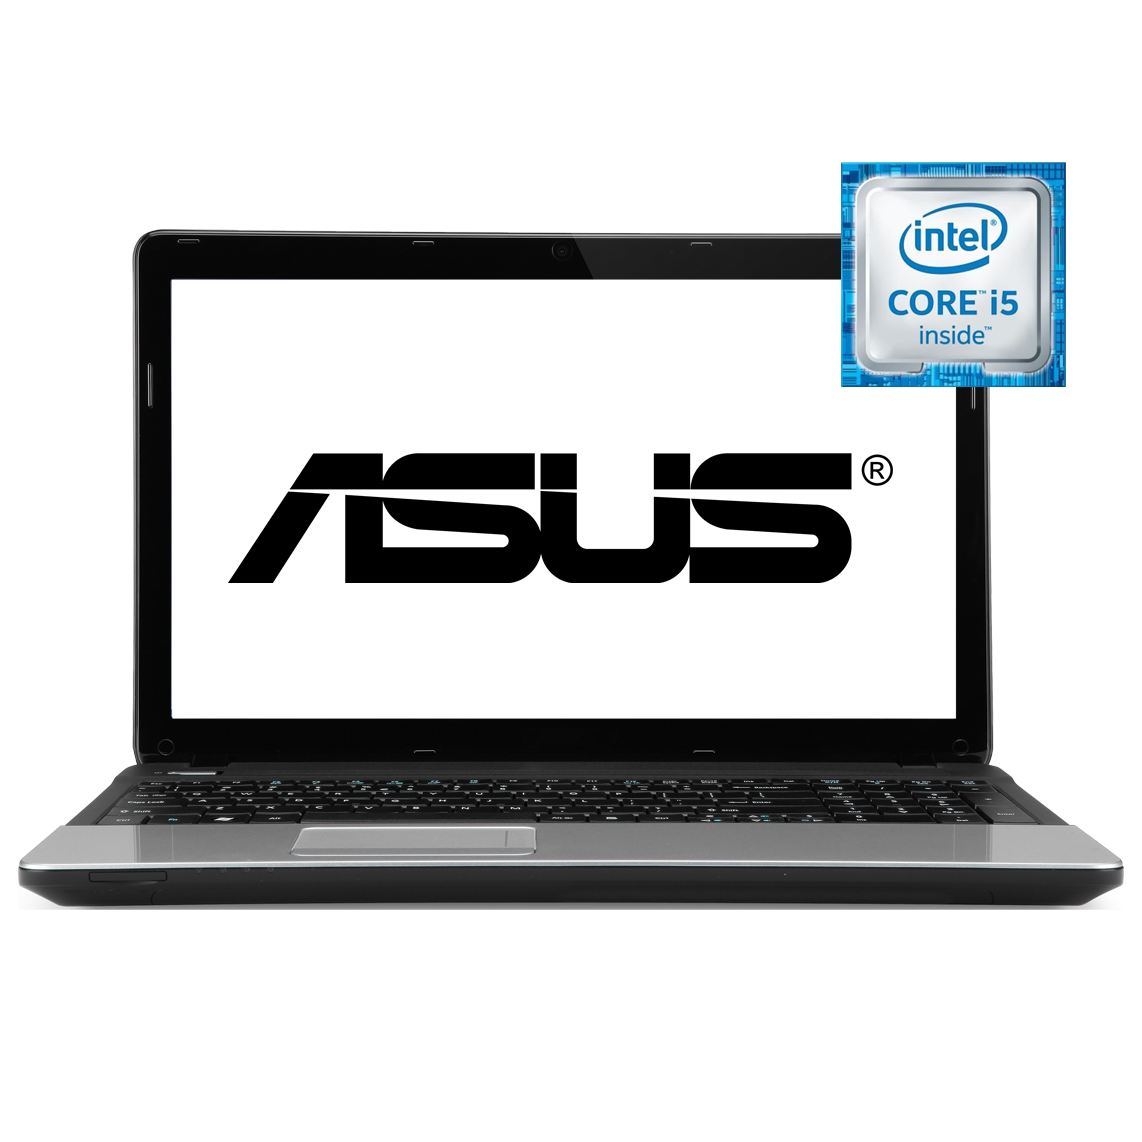 ASUS - 17.3 inch Core i5 2nd Gen